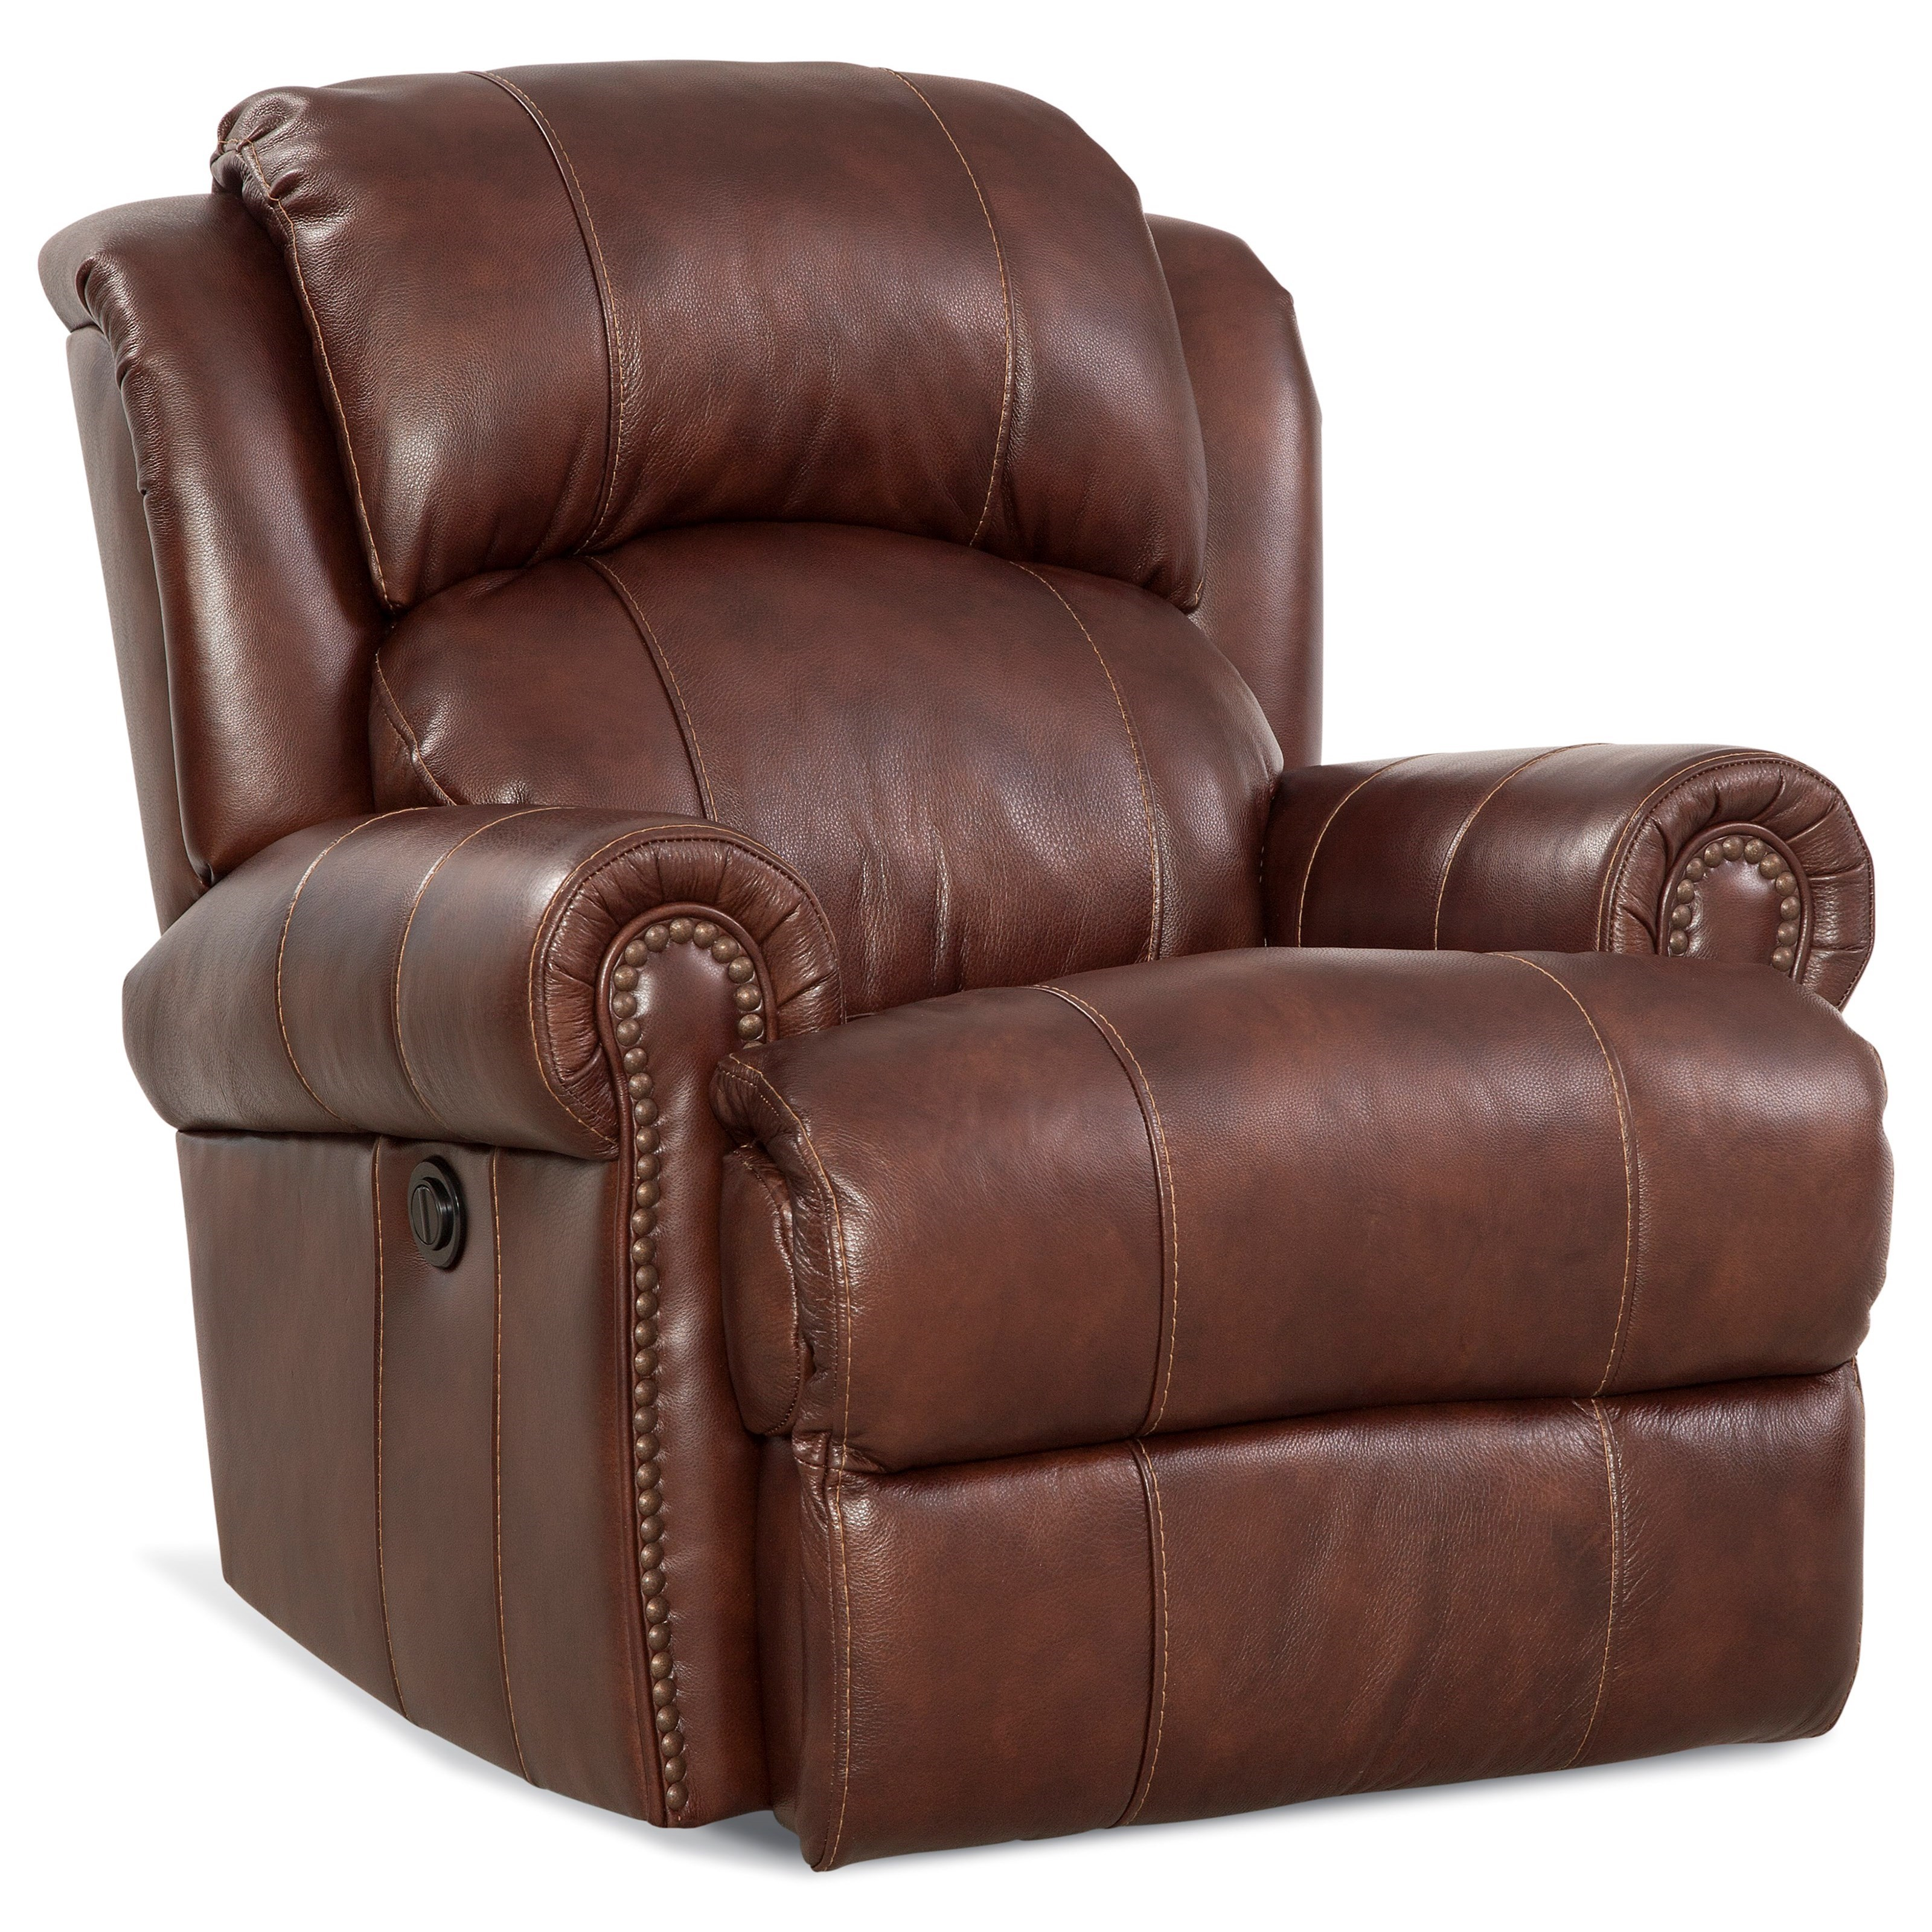 HomeStretch 164 Collection Rocker Recliner - Item Number: 164-91-21